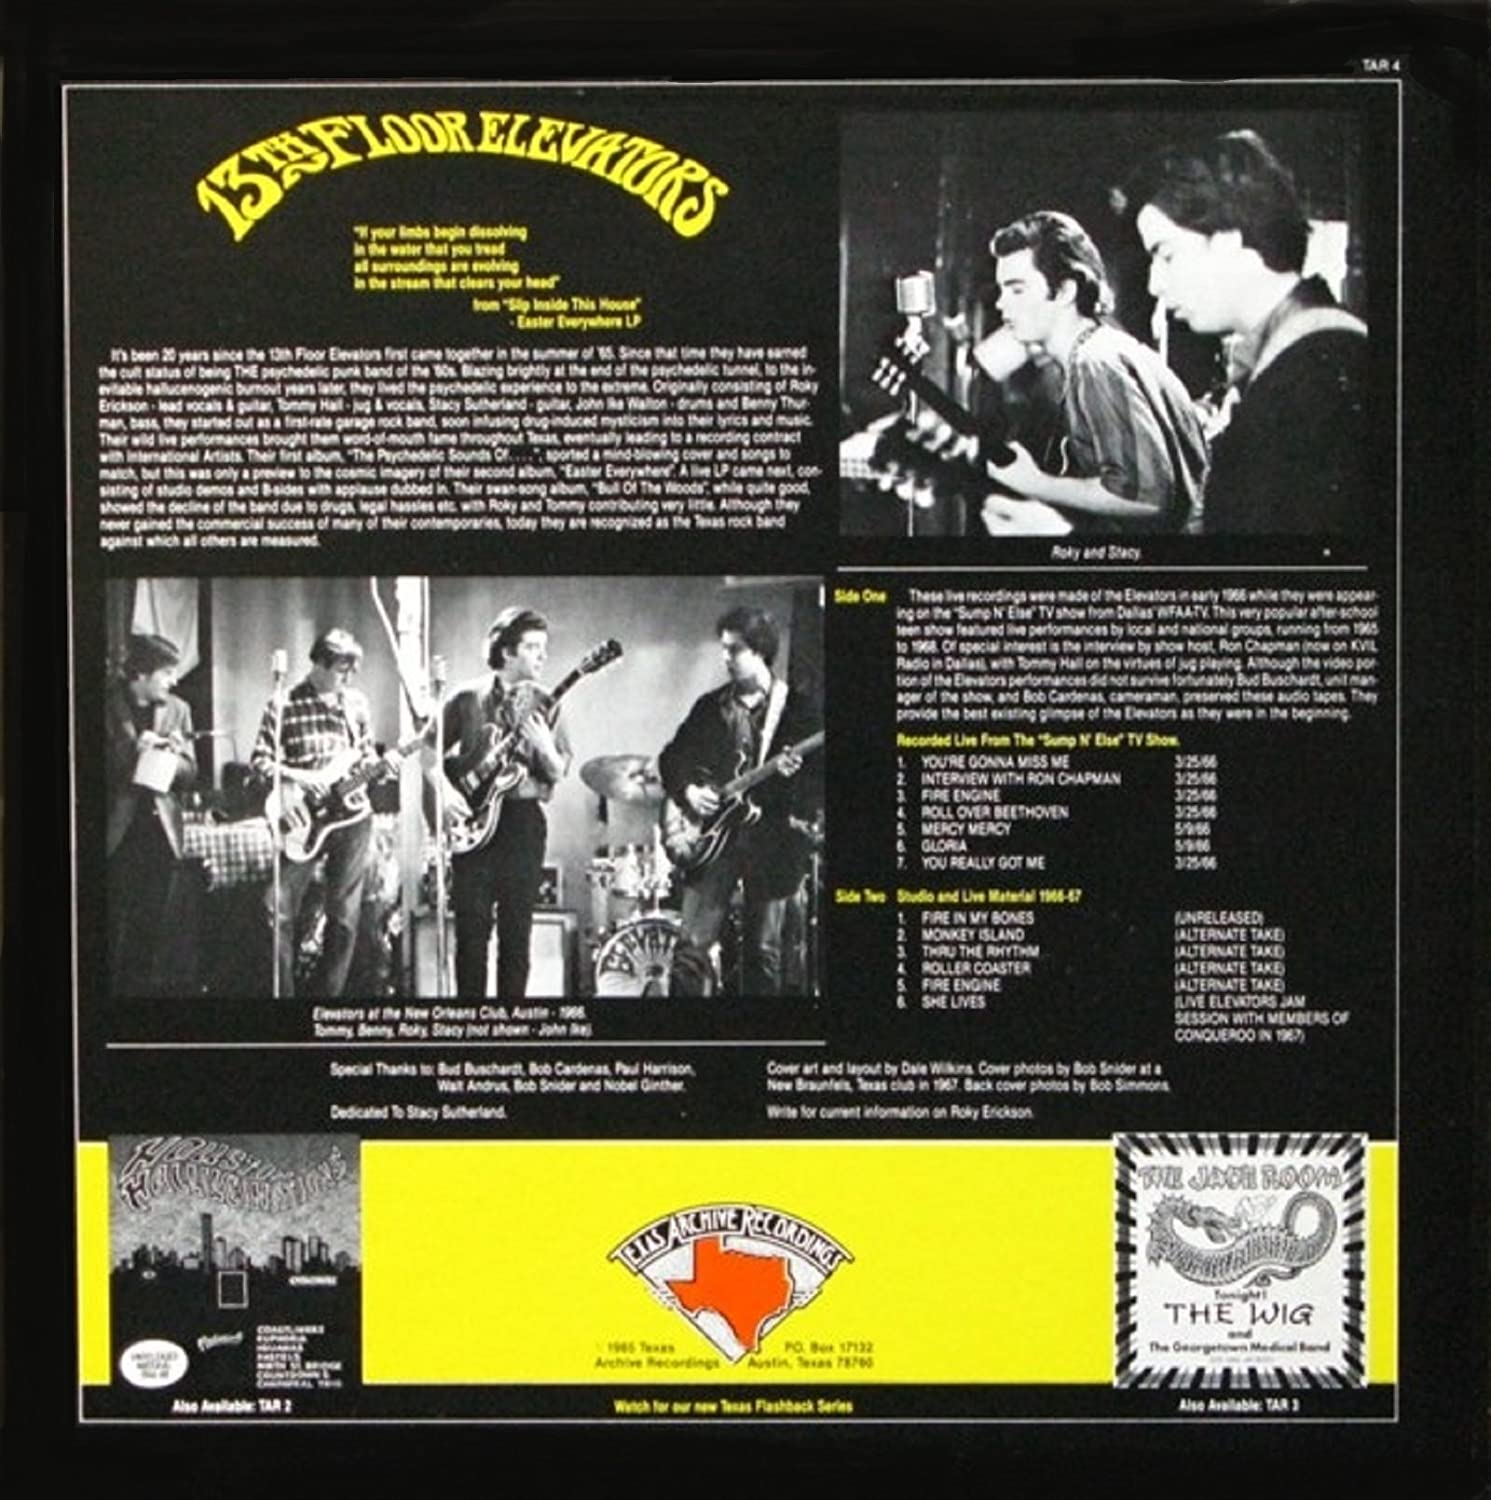 13th FLOOR ELEVATORS, Roky Erickson, Tommy Hall, Stacy Sutherland, Benny Thurman, John Ike Walton - Fire In My Bones - Amazon.com Music